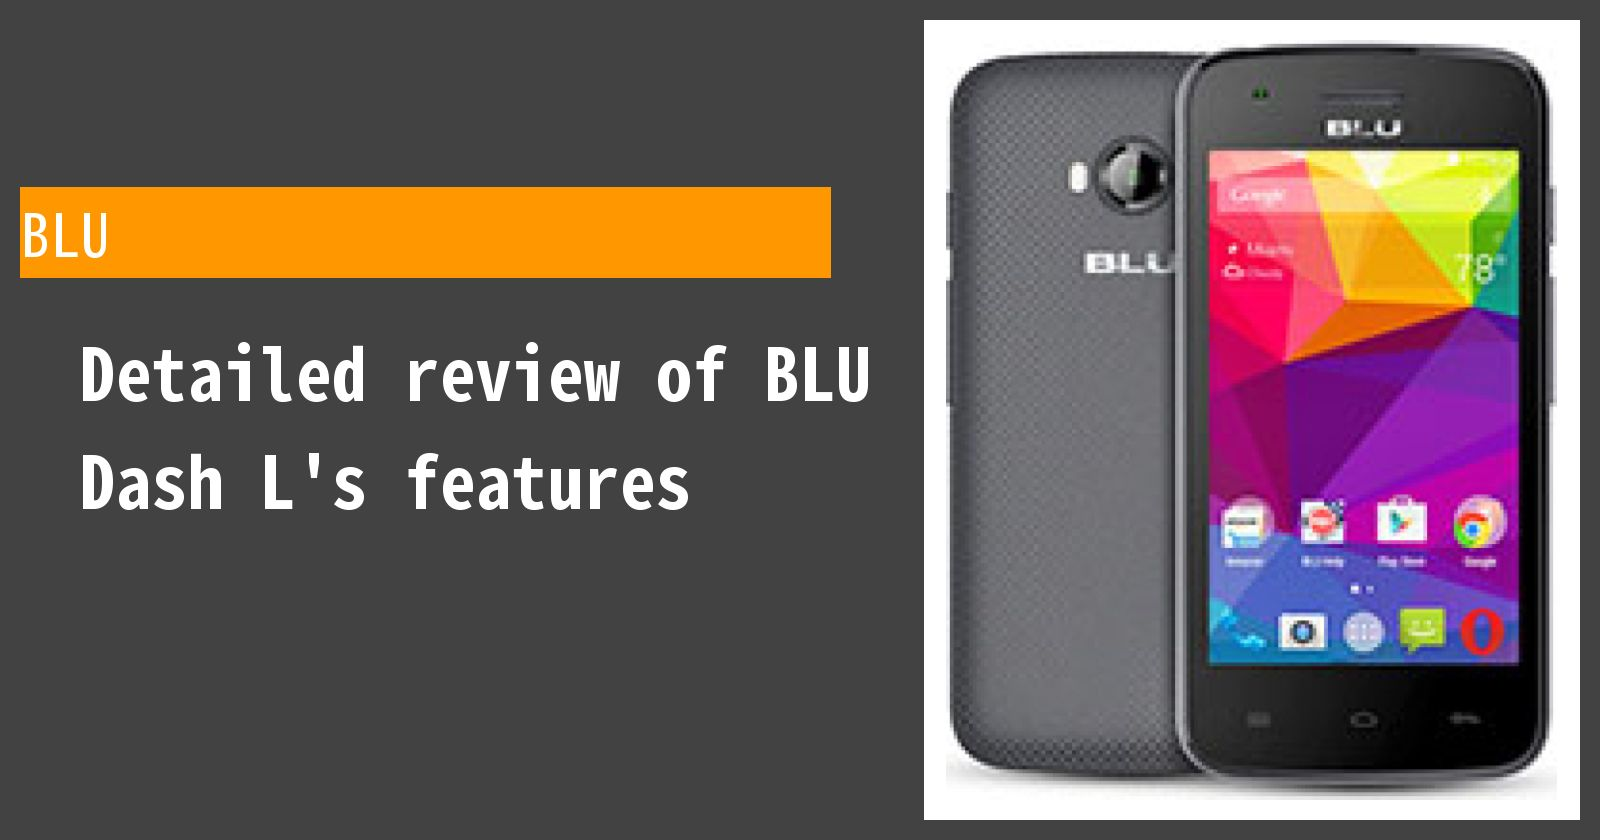 Detailed review of BLU Dash L's features